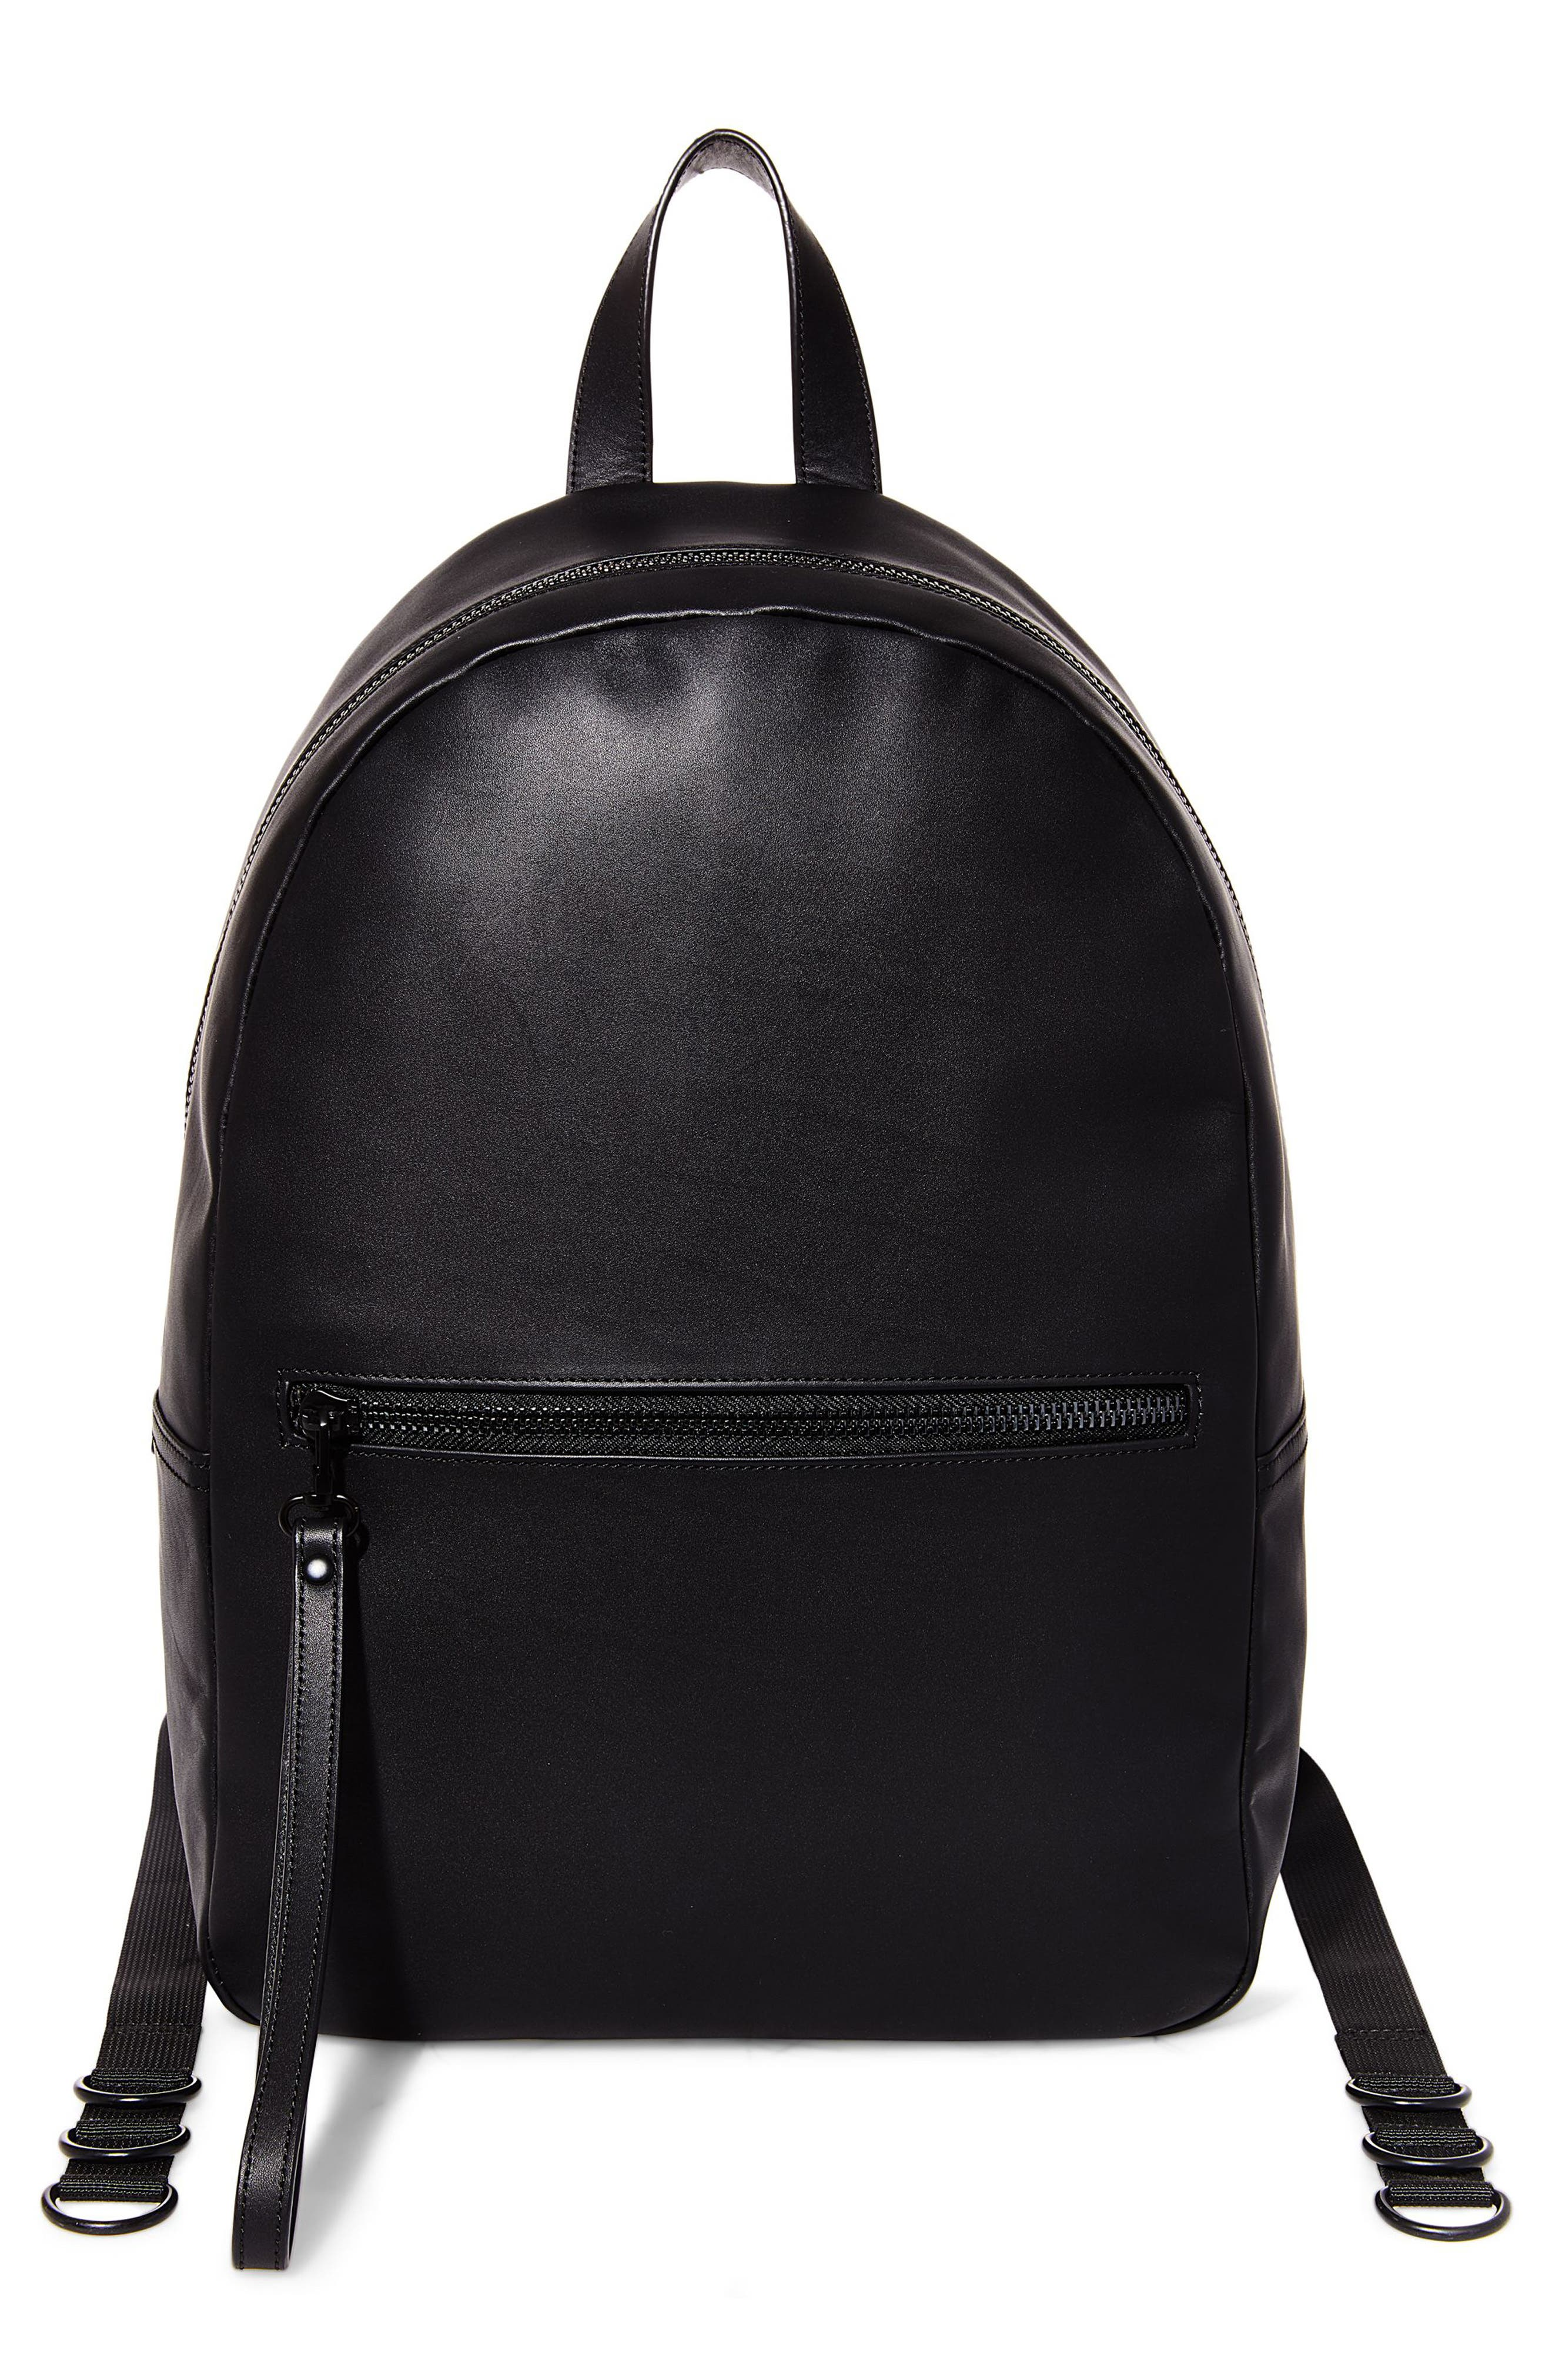 GQ x Steve Madden Leather Backpack,                         Main,                         color, 001